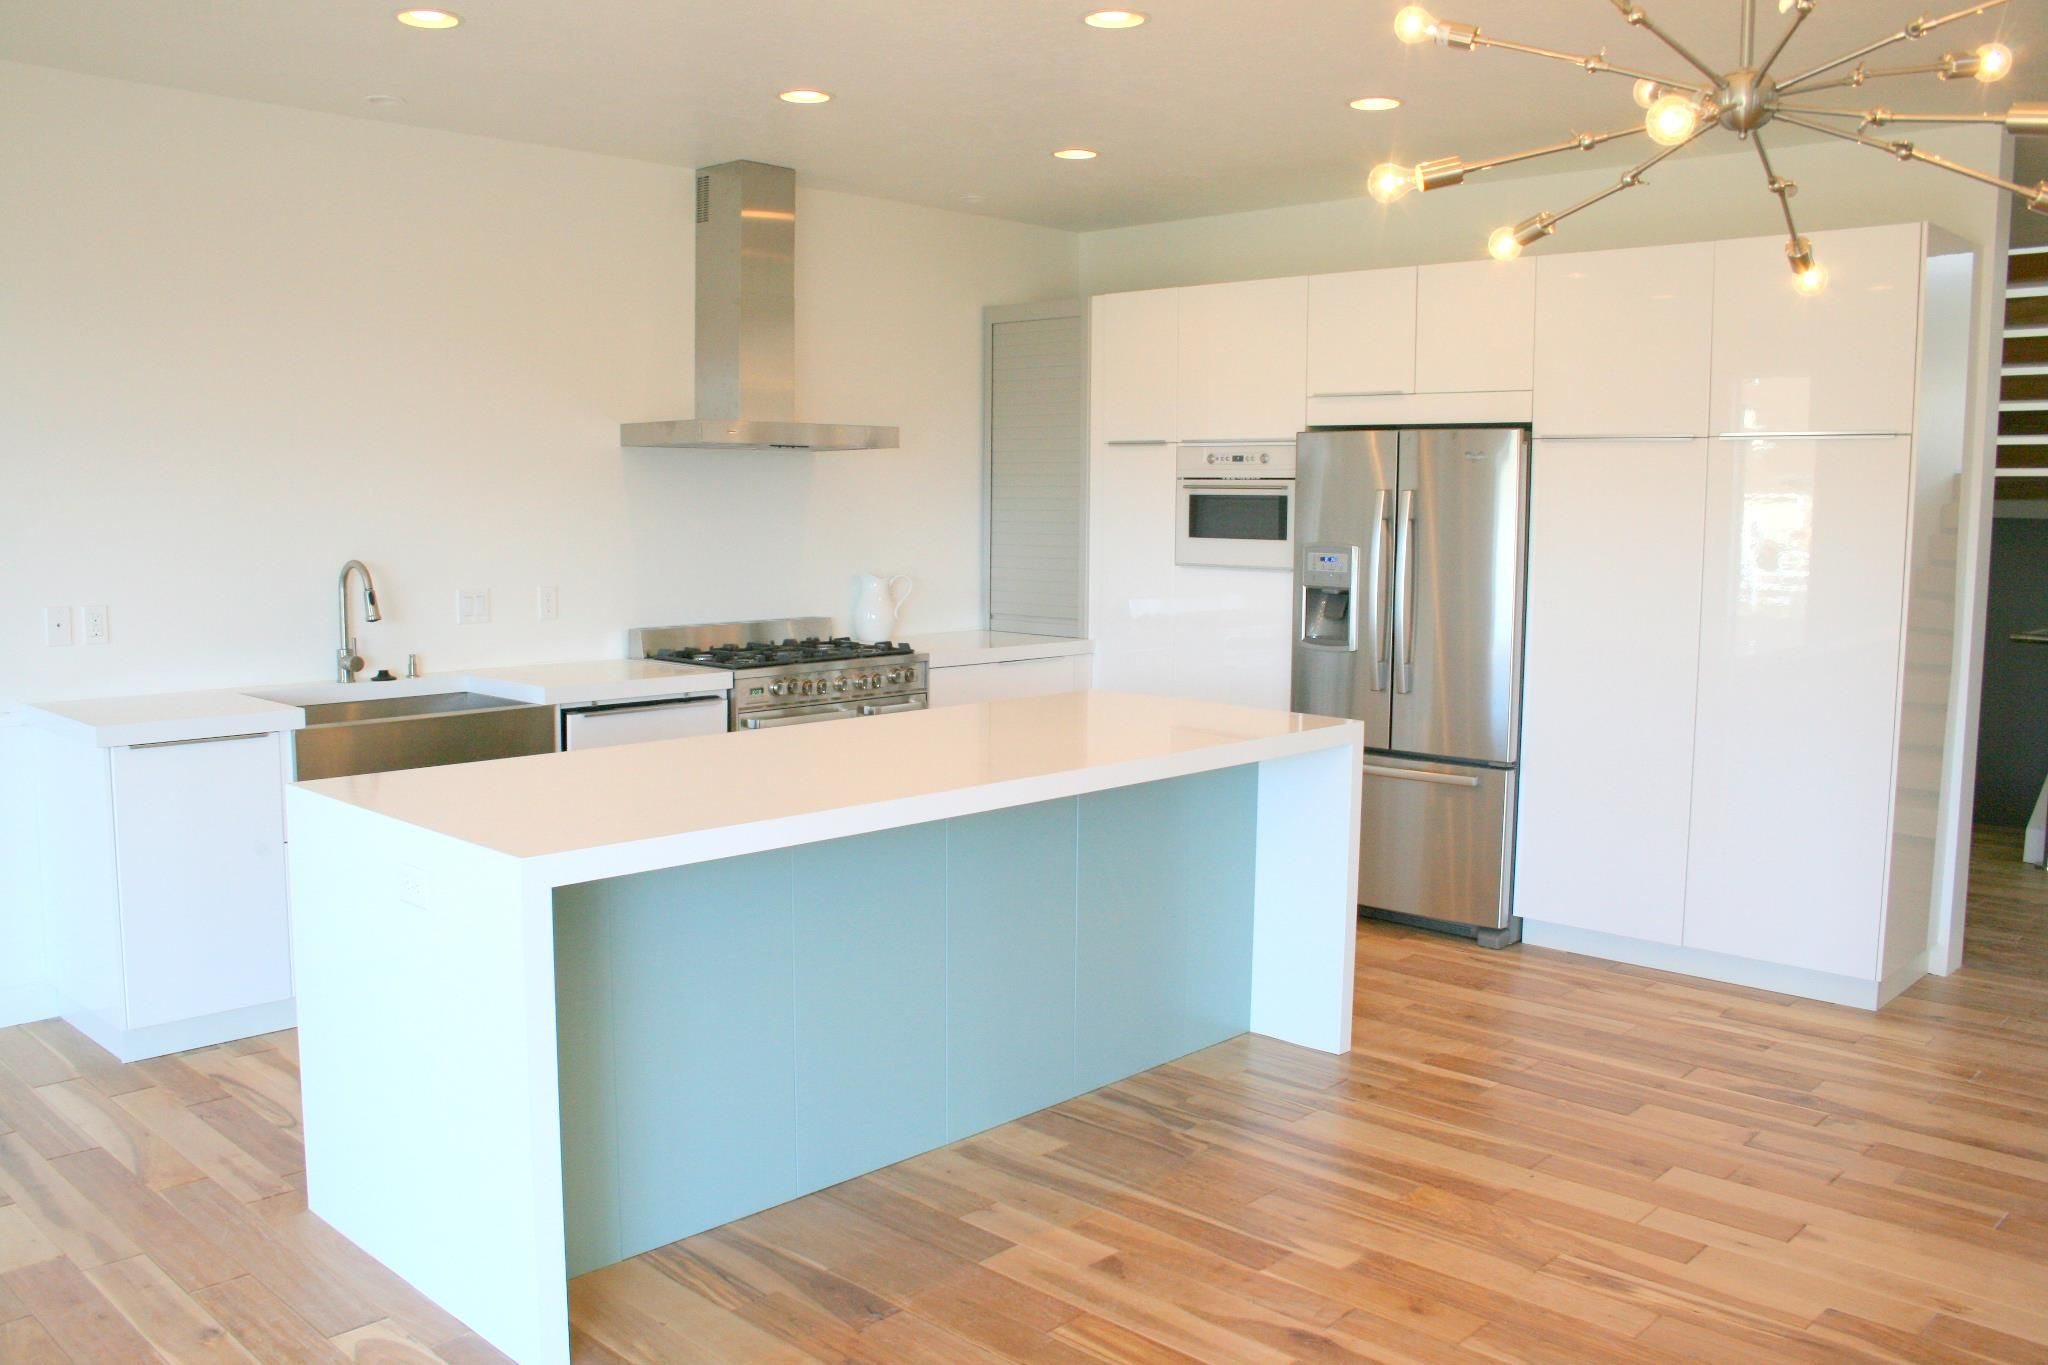 ikea kitchen countertop cleaning services white with waterfall countertops in zeus